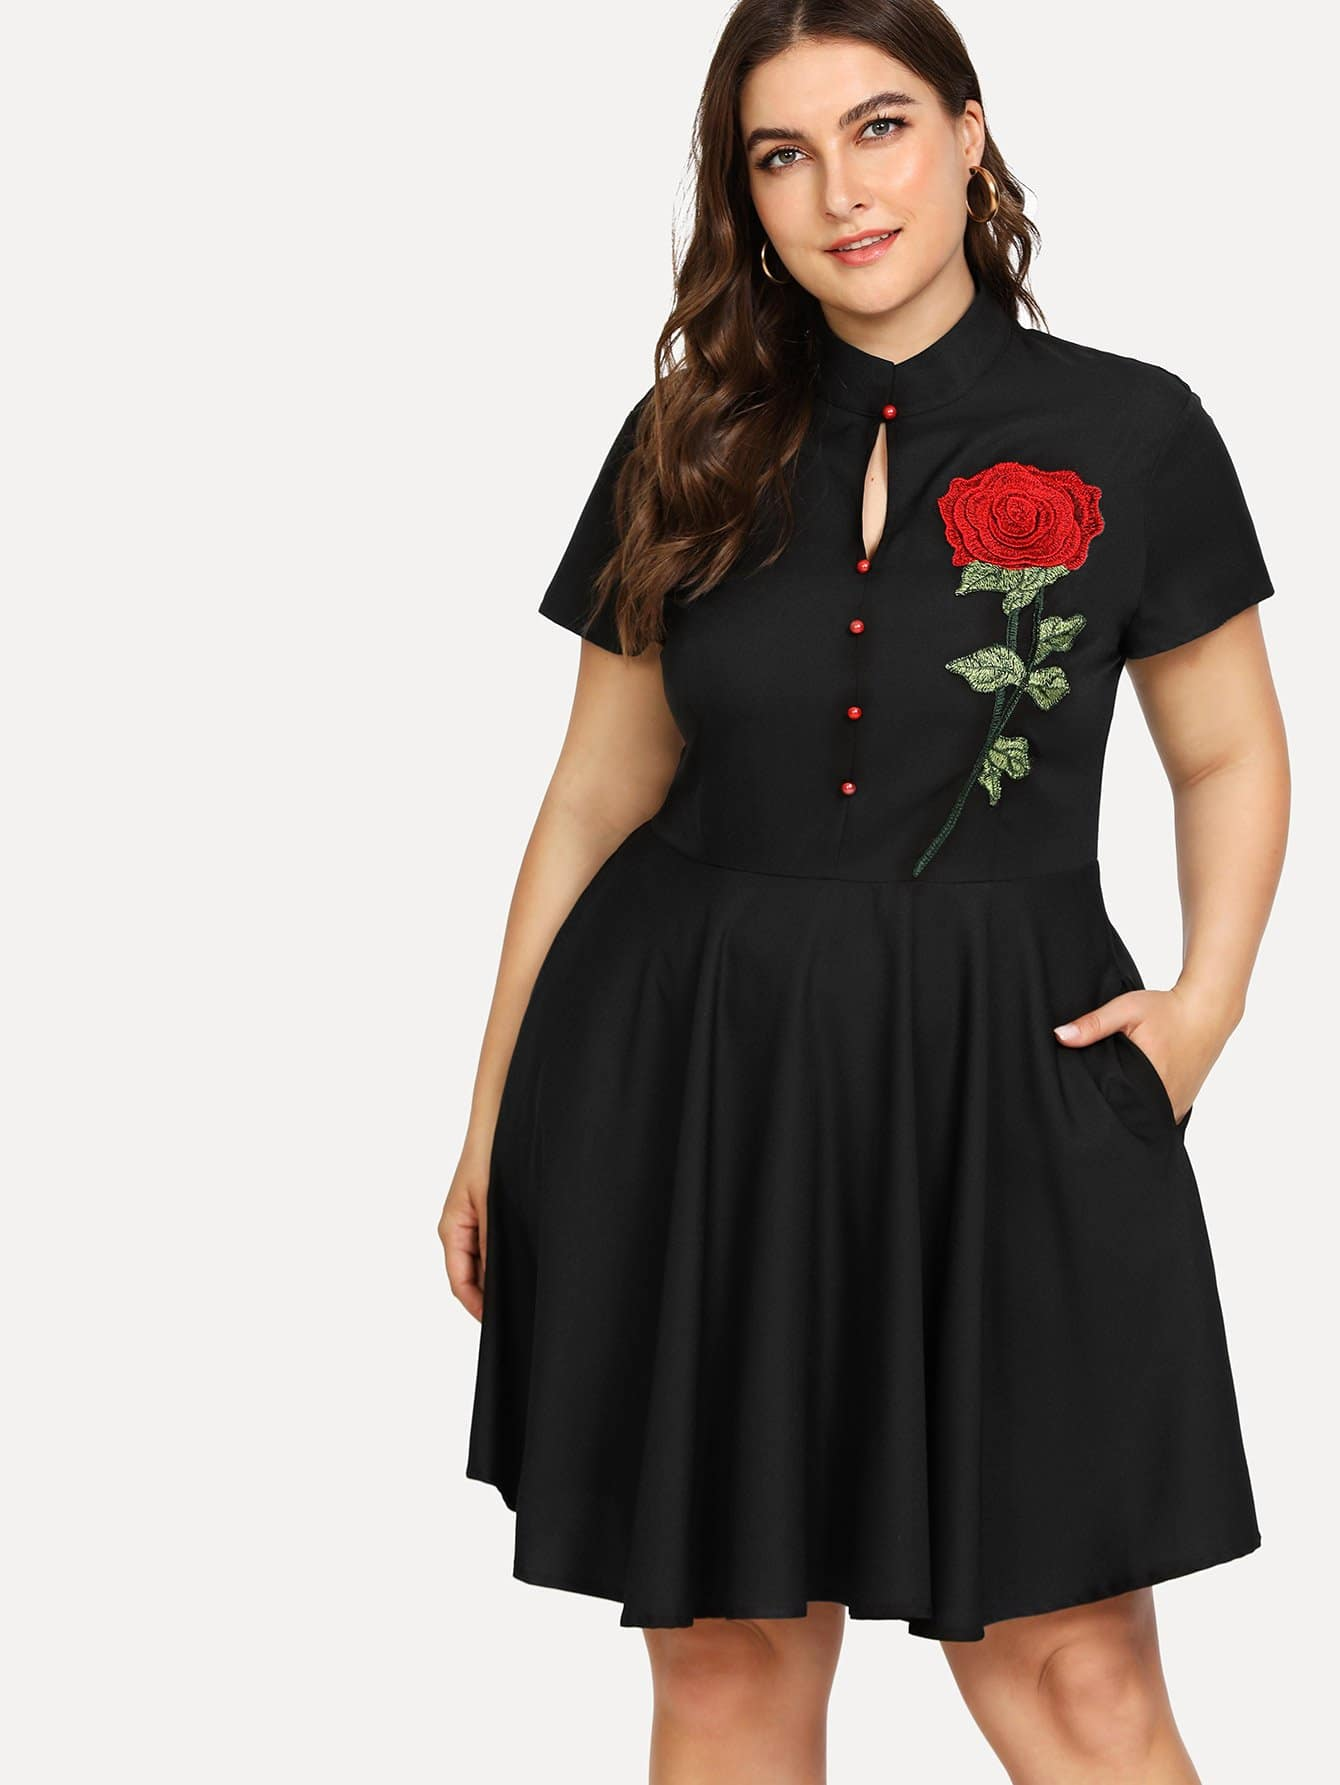 Rose Embroidered Applique Dress split side embroidered applique dress